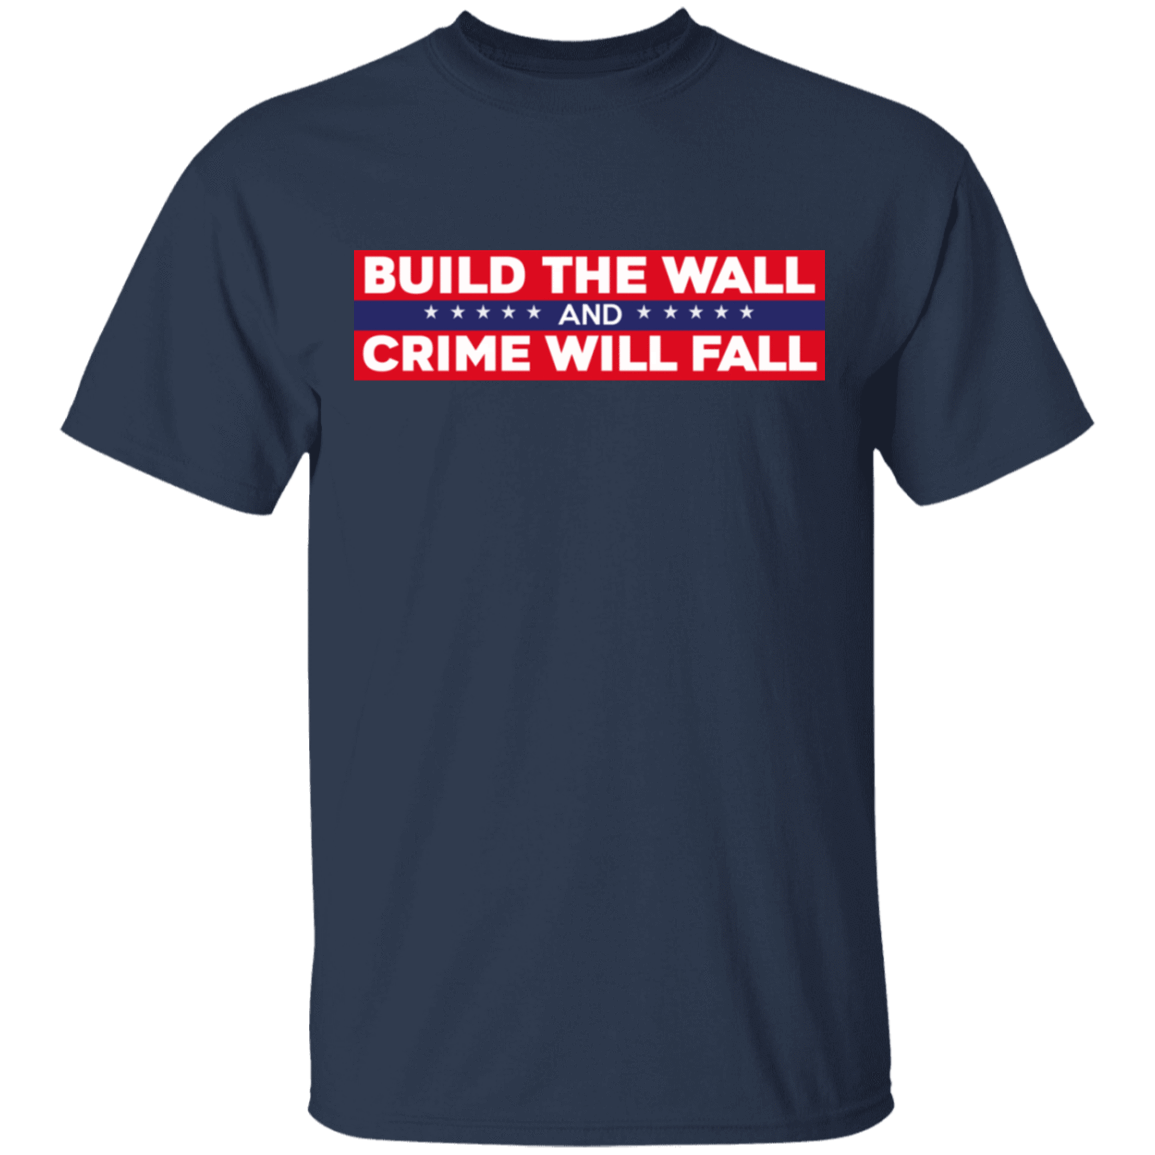 Build The Wall And Crime Will Fall Bumper T-Shirts, Hoodies, Tank 22-111-80184187-250 - Tee Ript